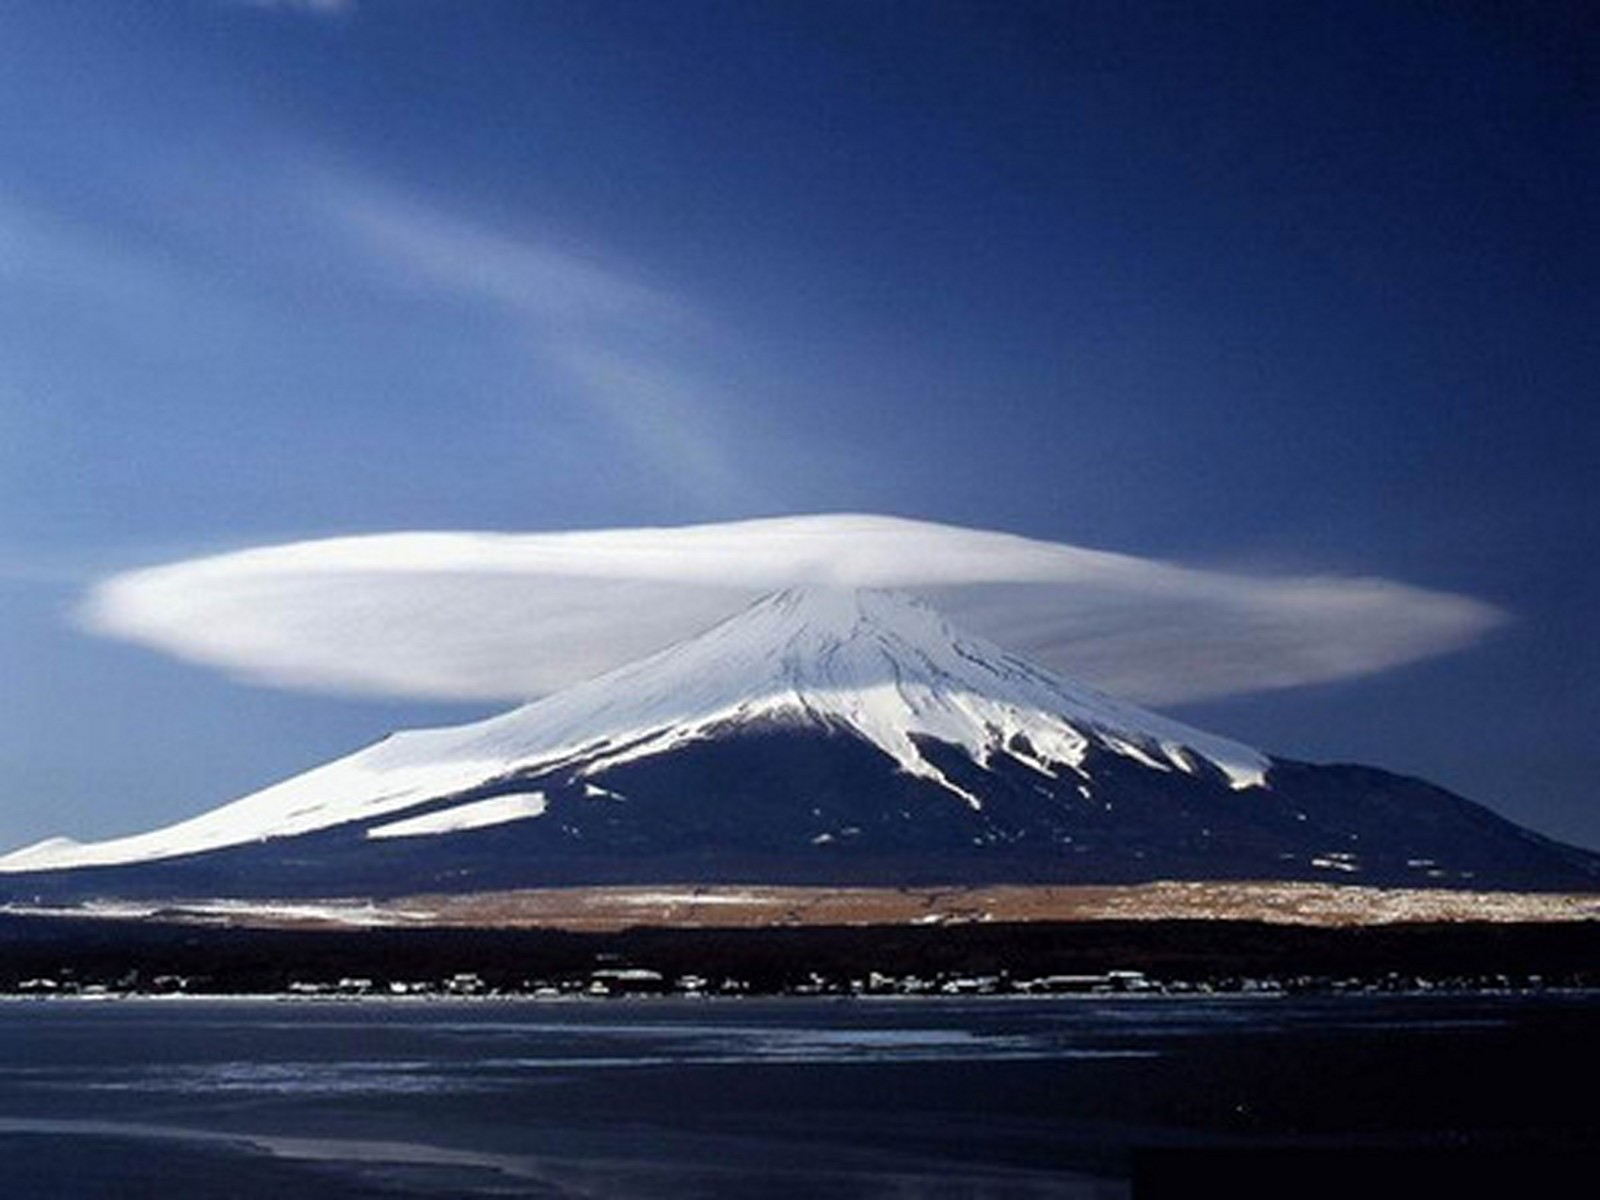 marvelous_lenticular_clouds